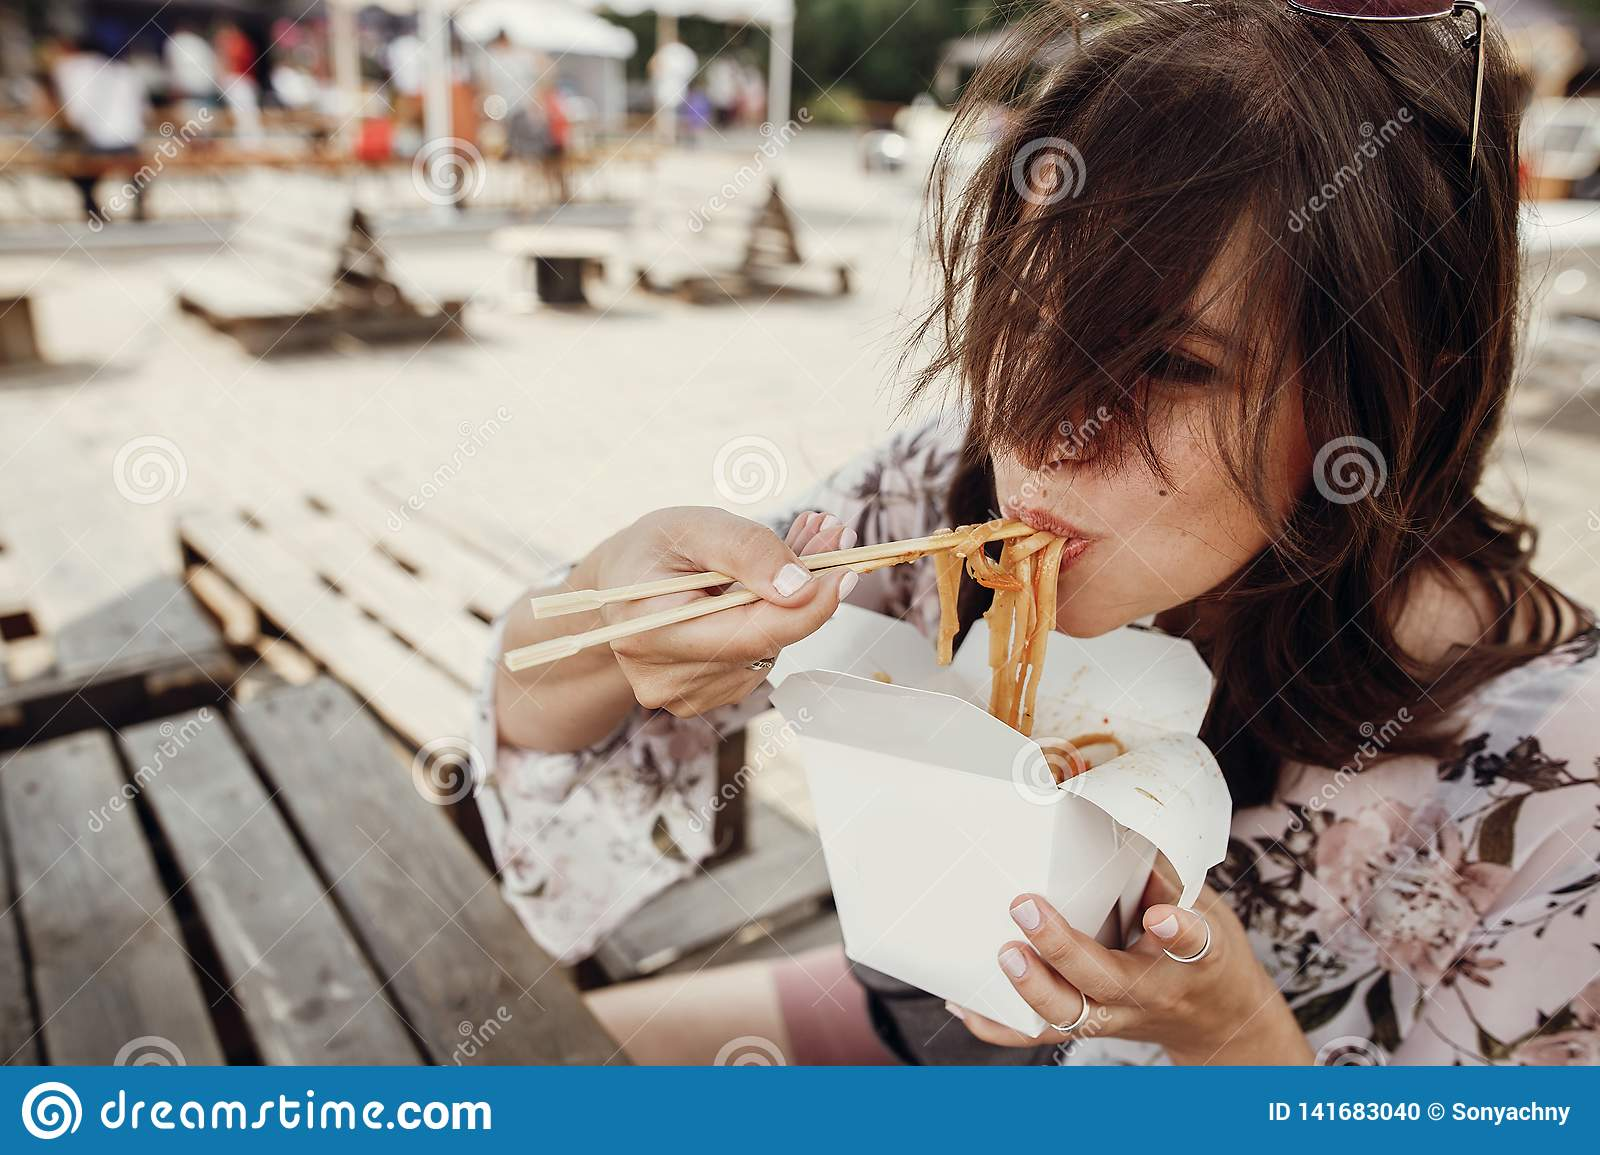 Stylish hipster girl eating wok noodles with vegetables and seafood from carton box with bamboo chopsticks. Asian Street food